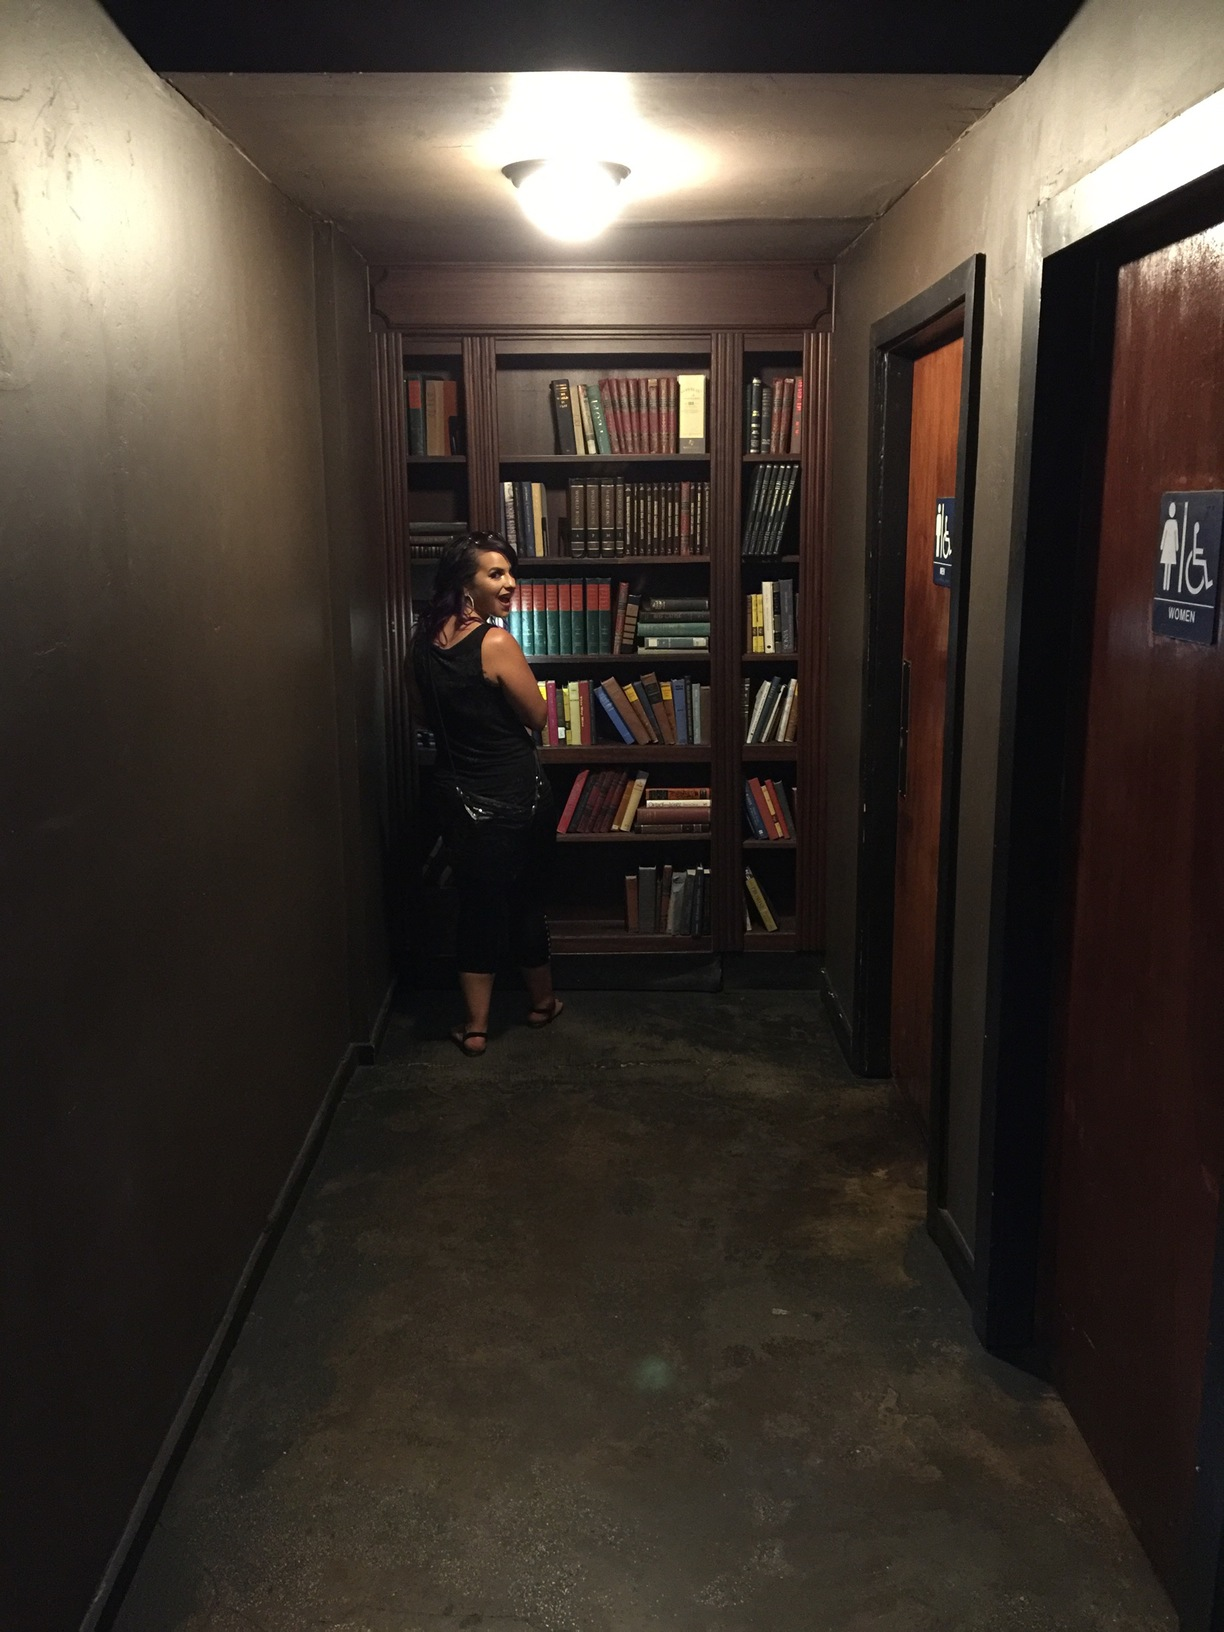 Here a patron is working on getting the false library door open at Circa 33 where a hidden, speakeasy-like bar lurks behind. Image Courtesy: Trover